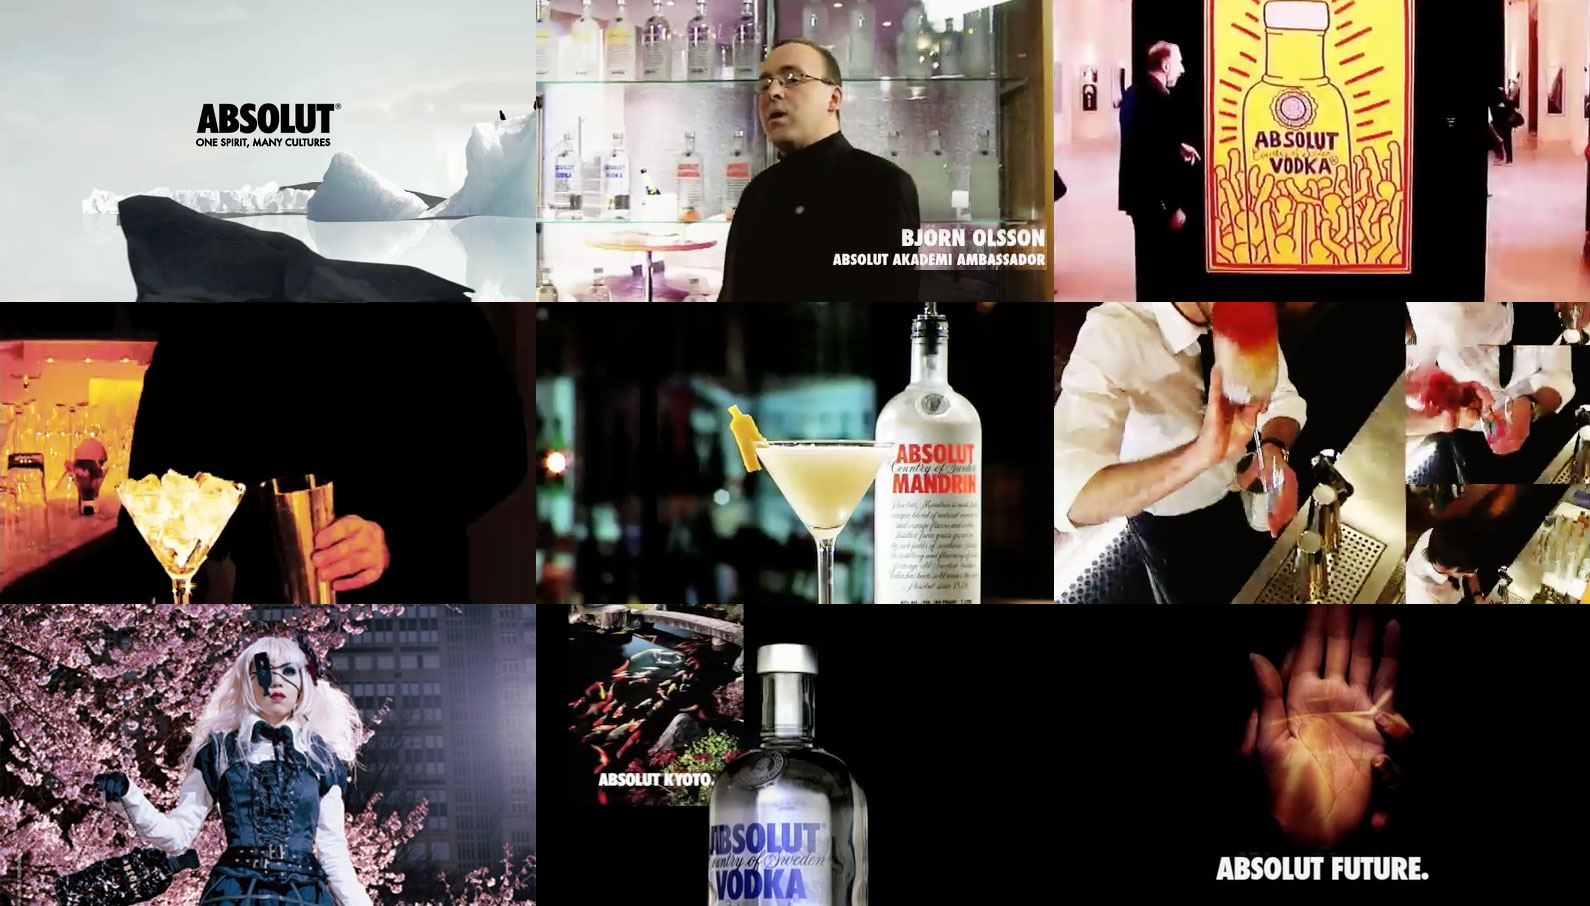 ABSOLUT One Spirit Film - Direction Solo Kojima